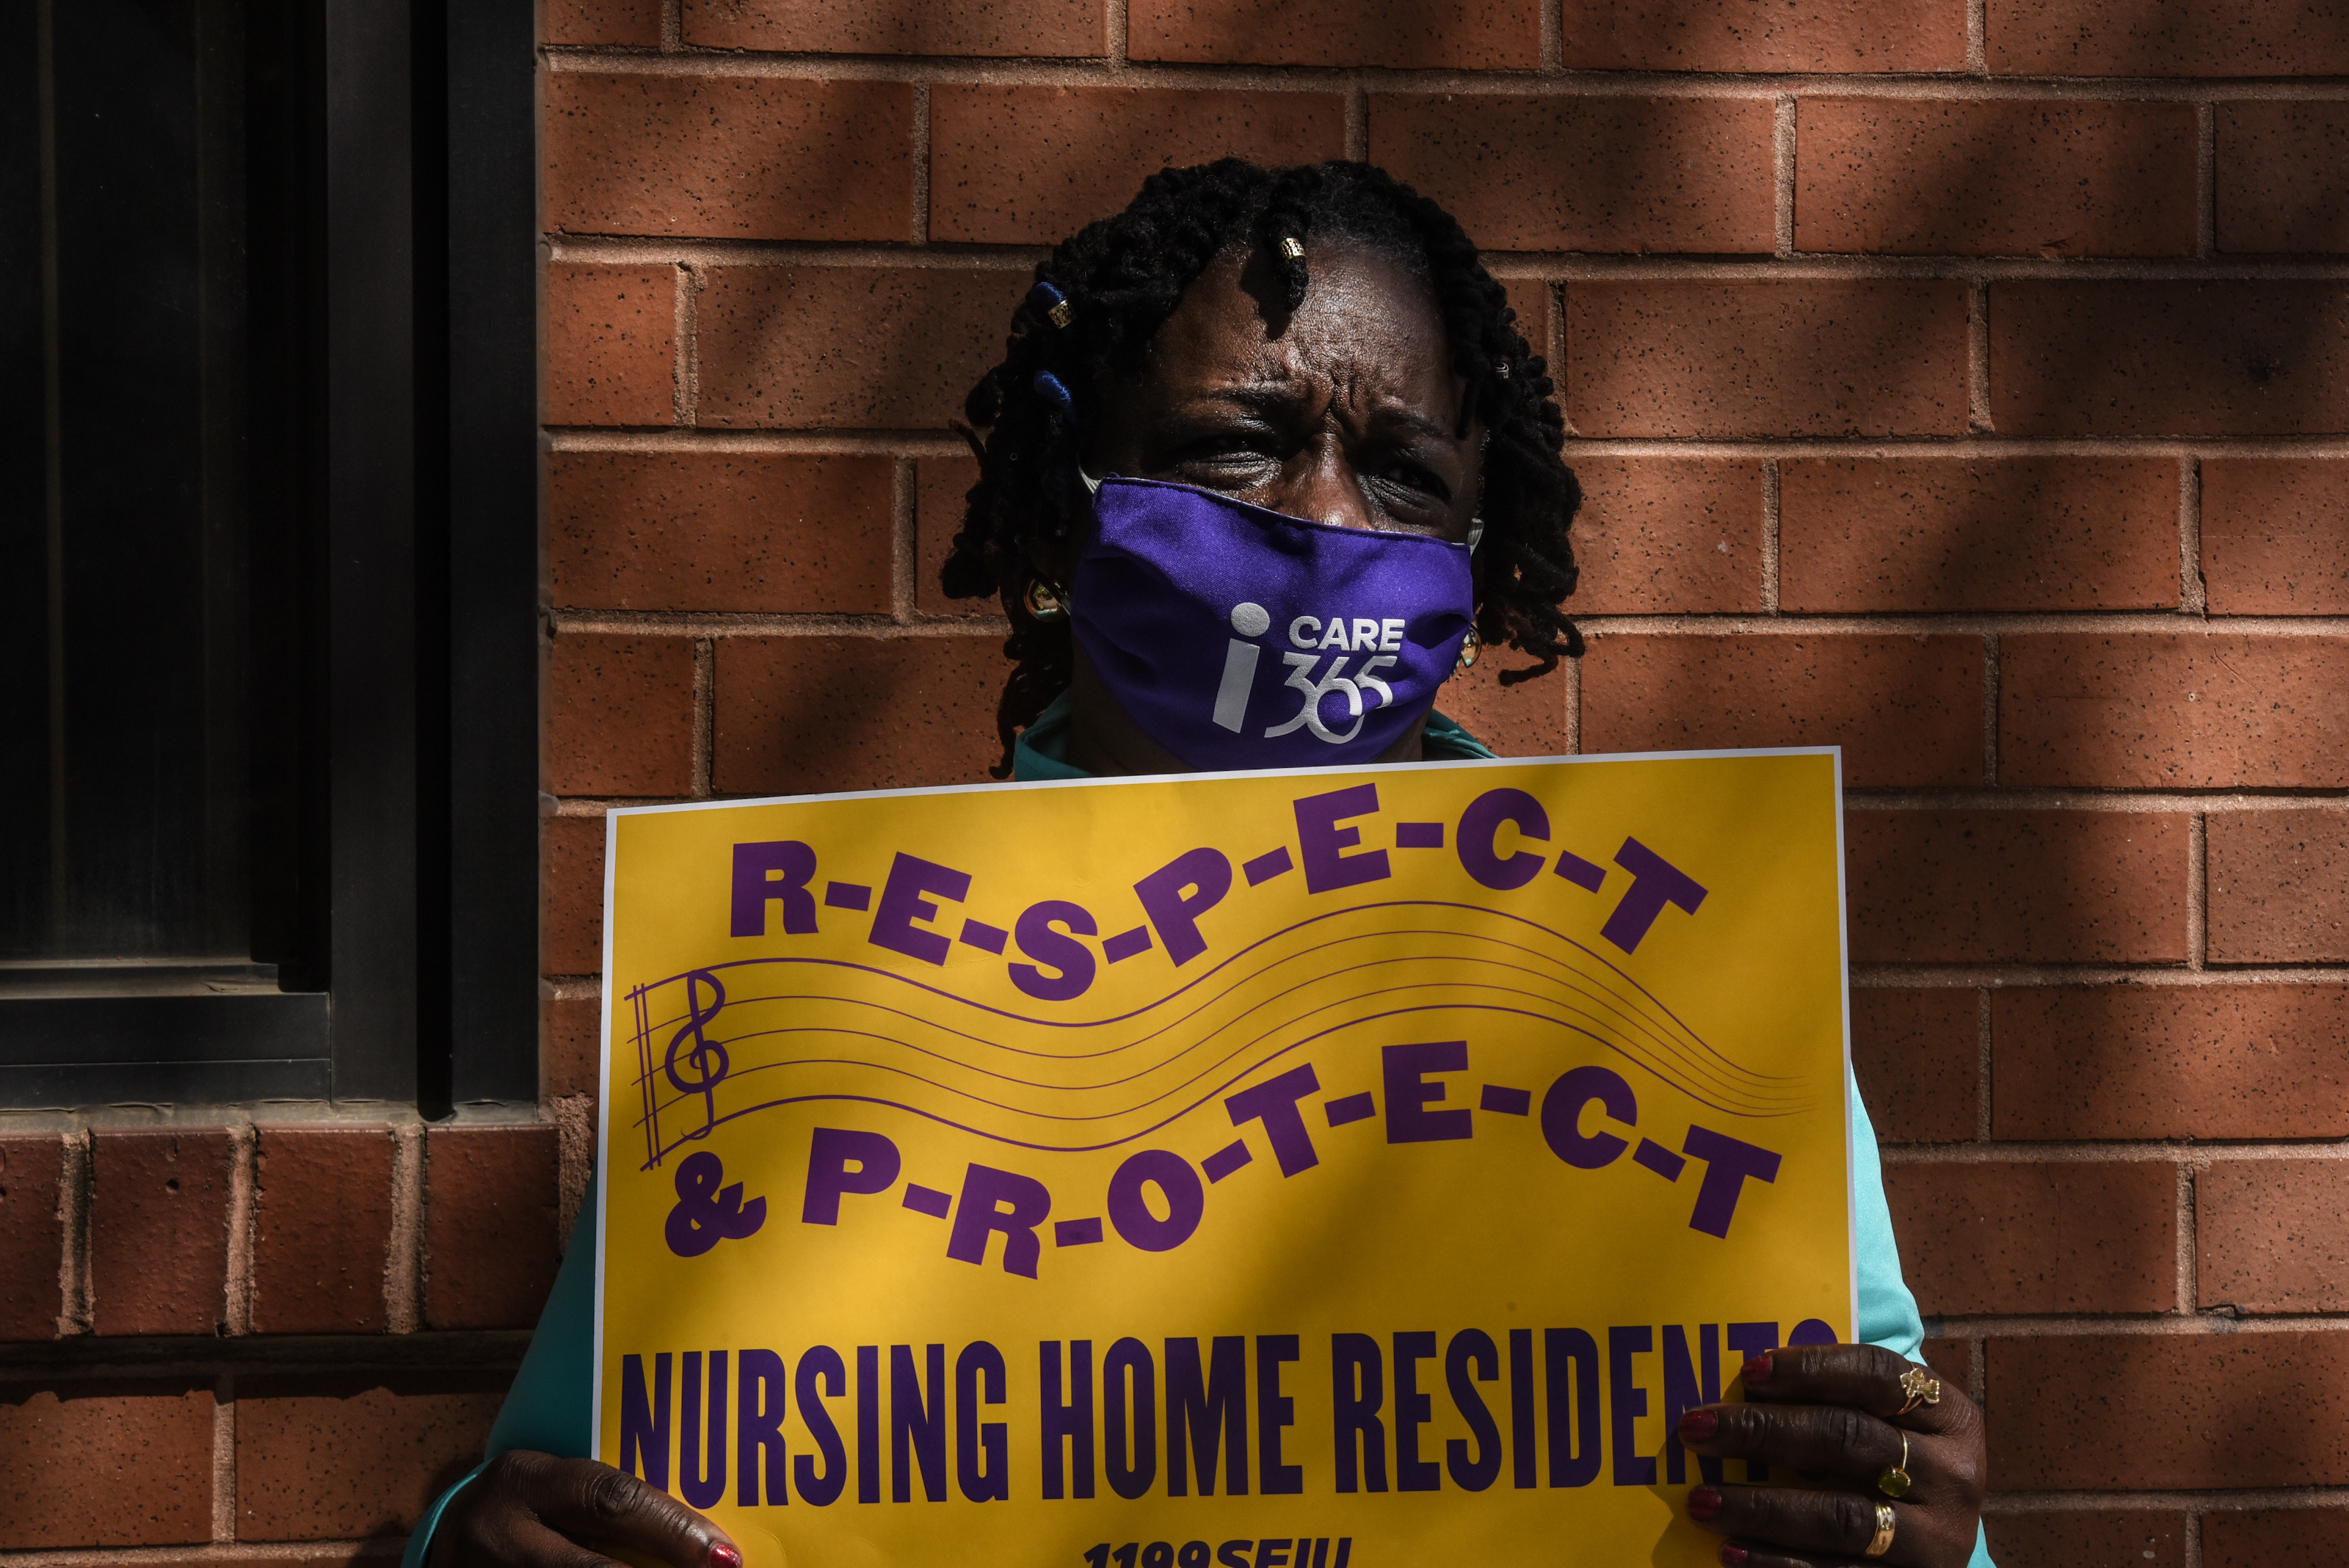 A nursing home worker participates in a vigil outside of a nursing home in Brooklyn, N.Y. on May 21, 2020. Workers say they need safer conditions to better protect nursing home residents and the people who care for them from the coronavirus.